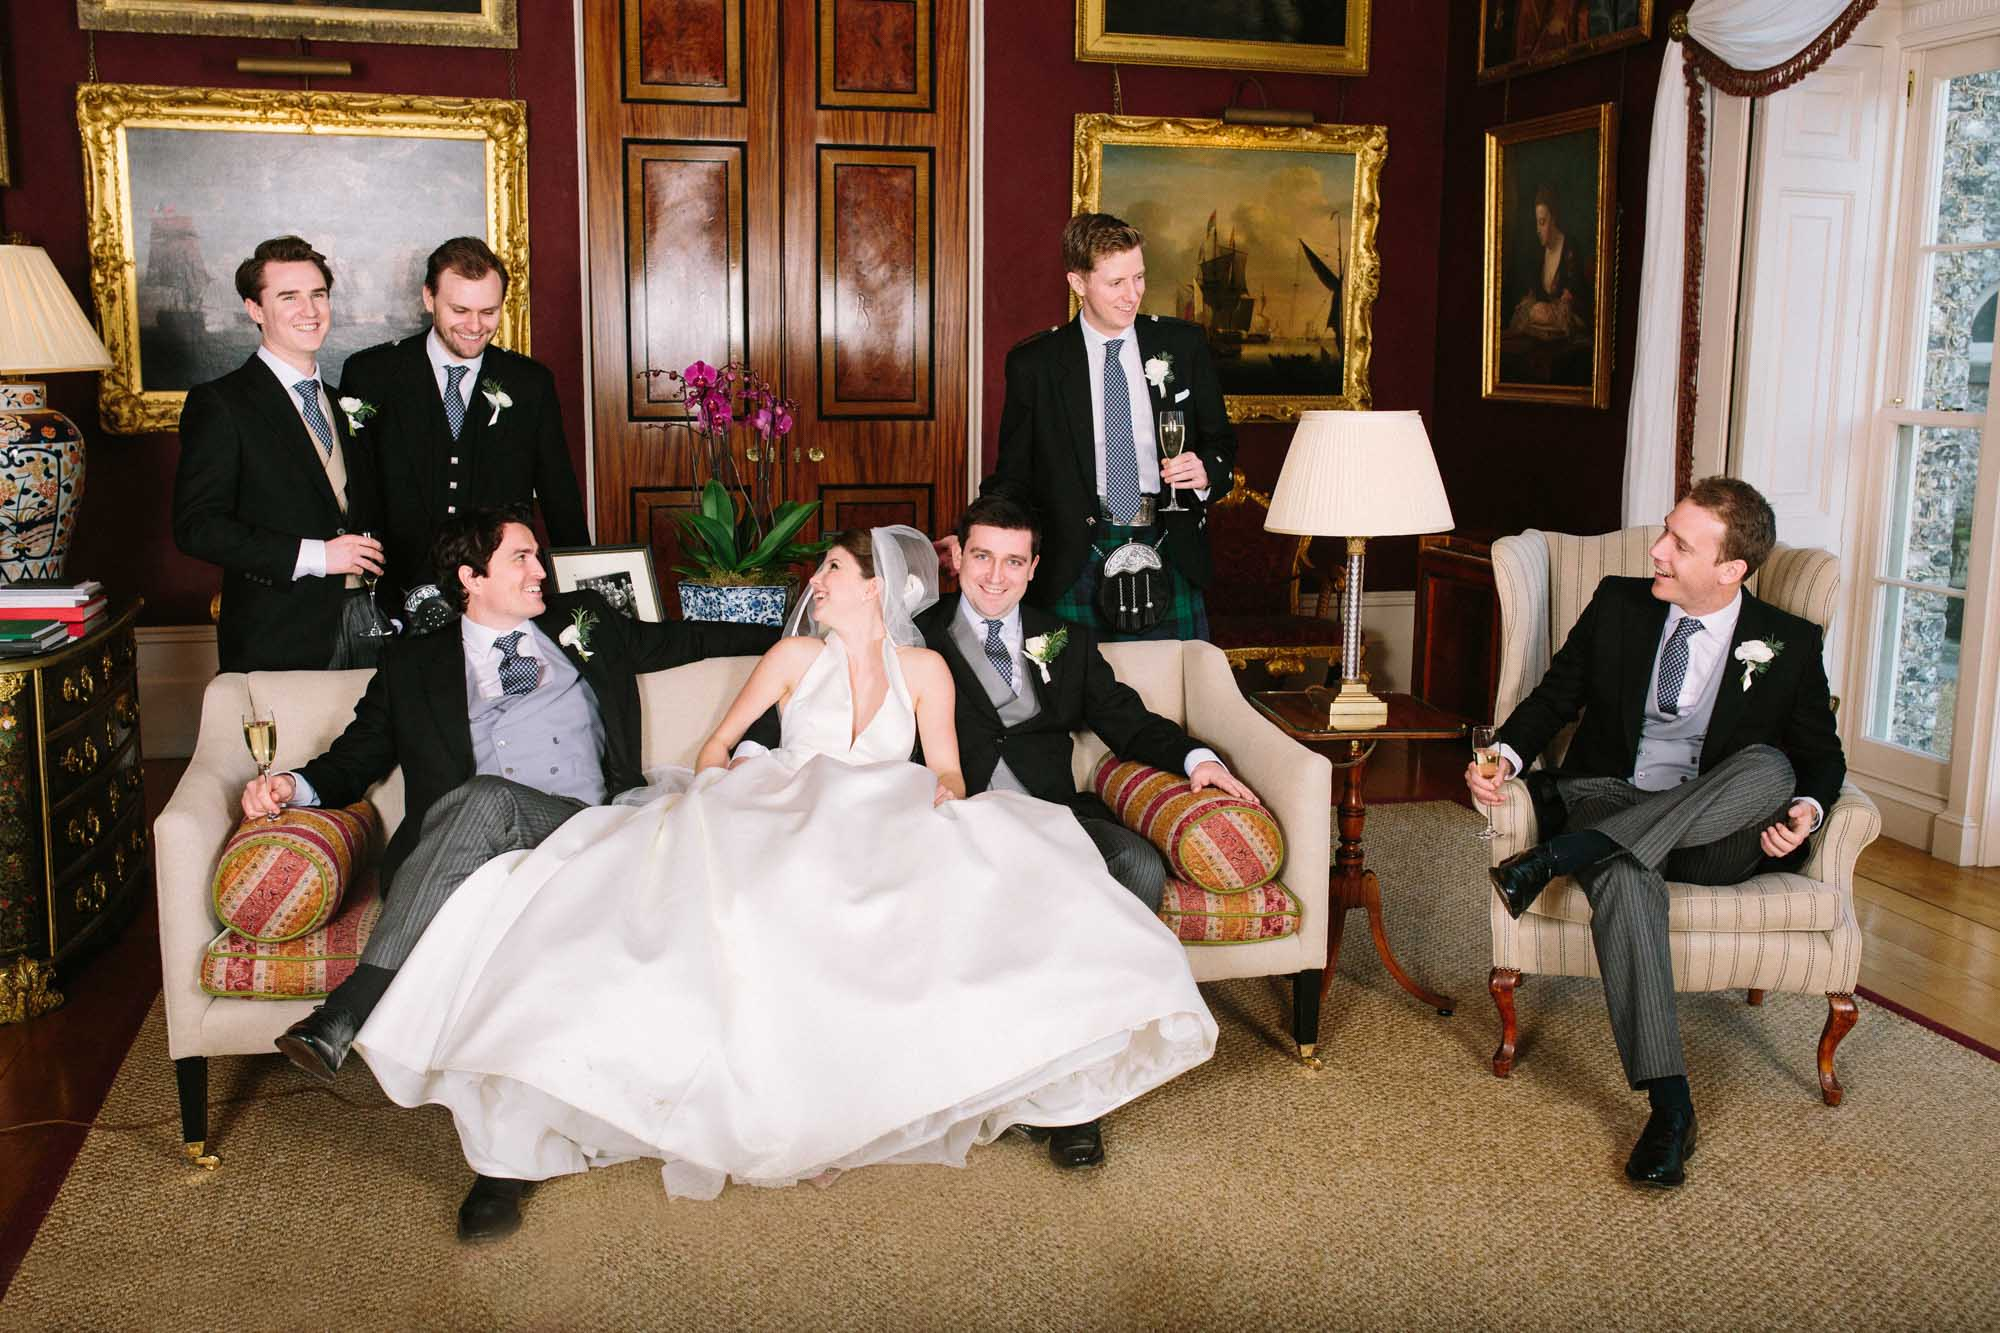 Relaxed group photo in the lounge of Goodwood House wedding